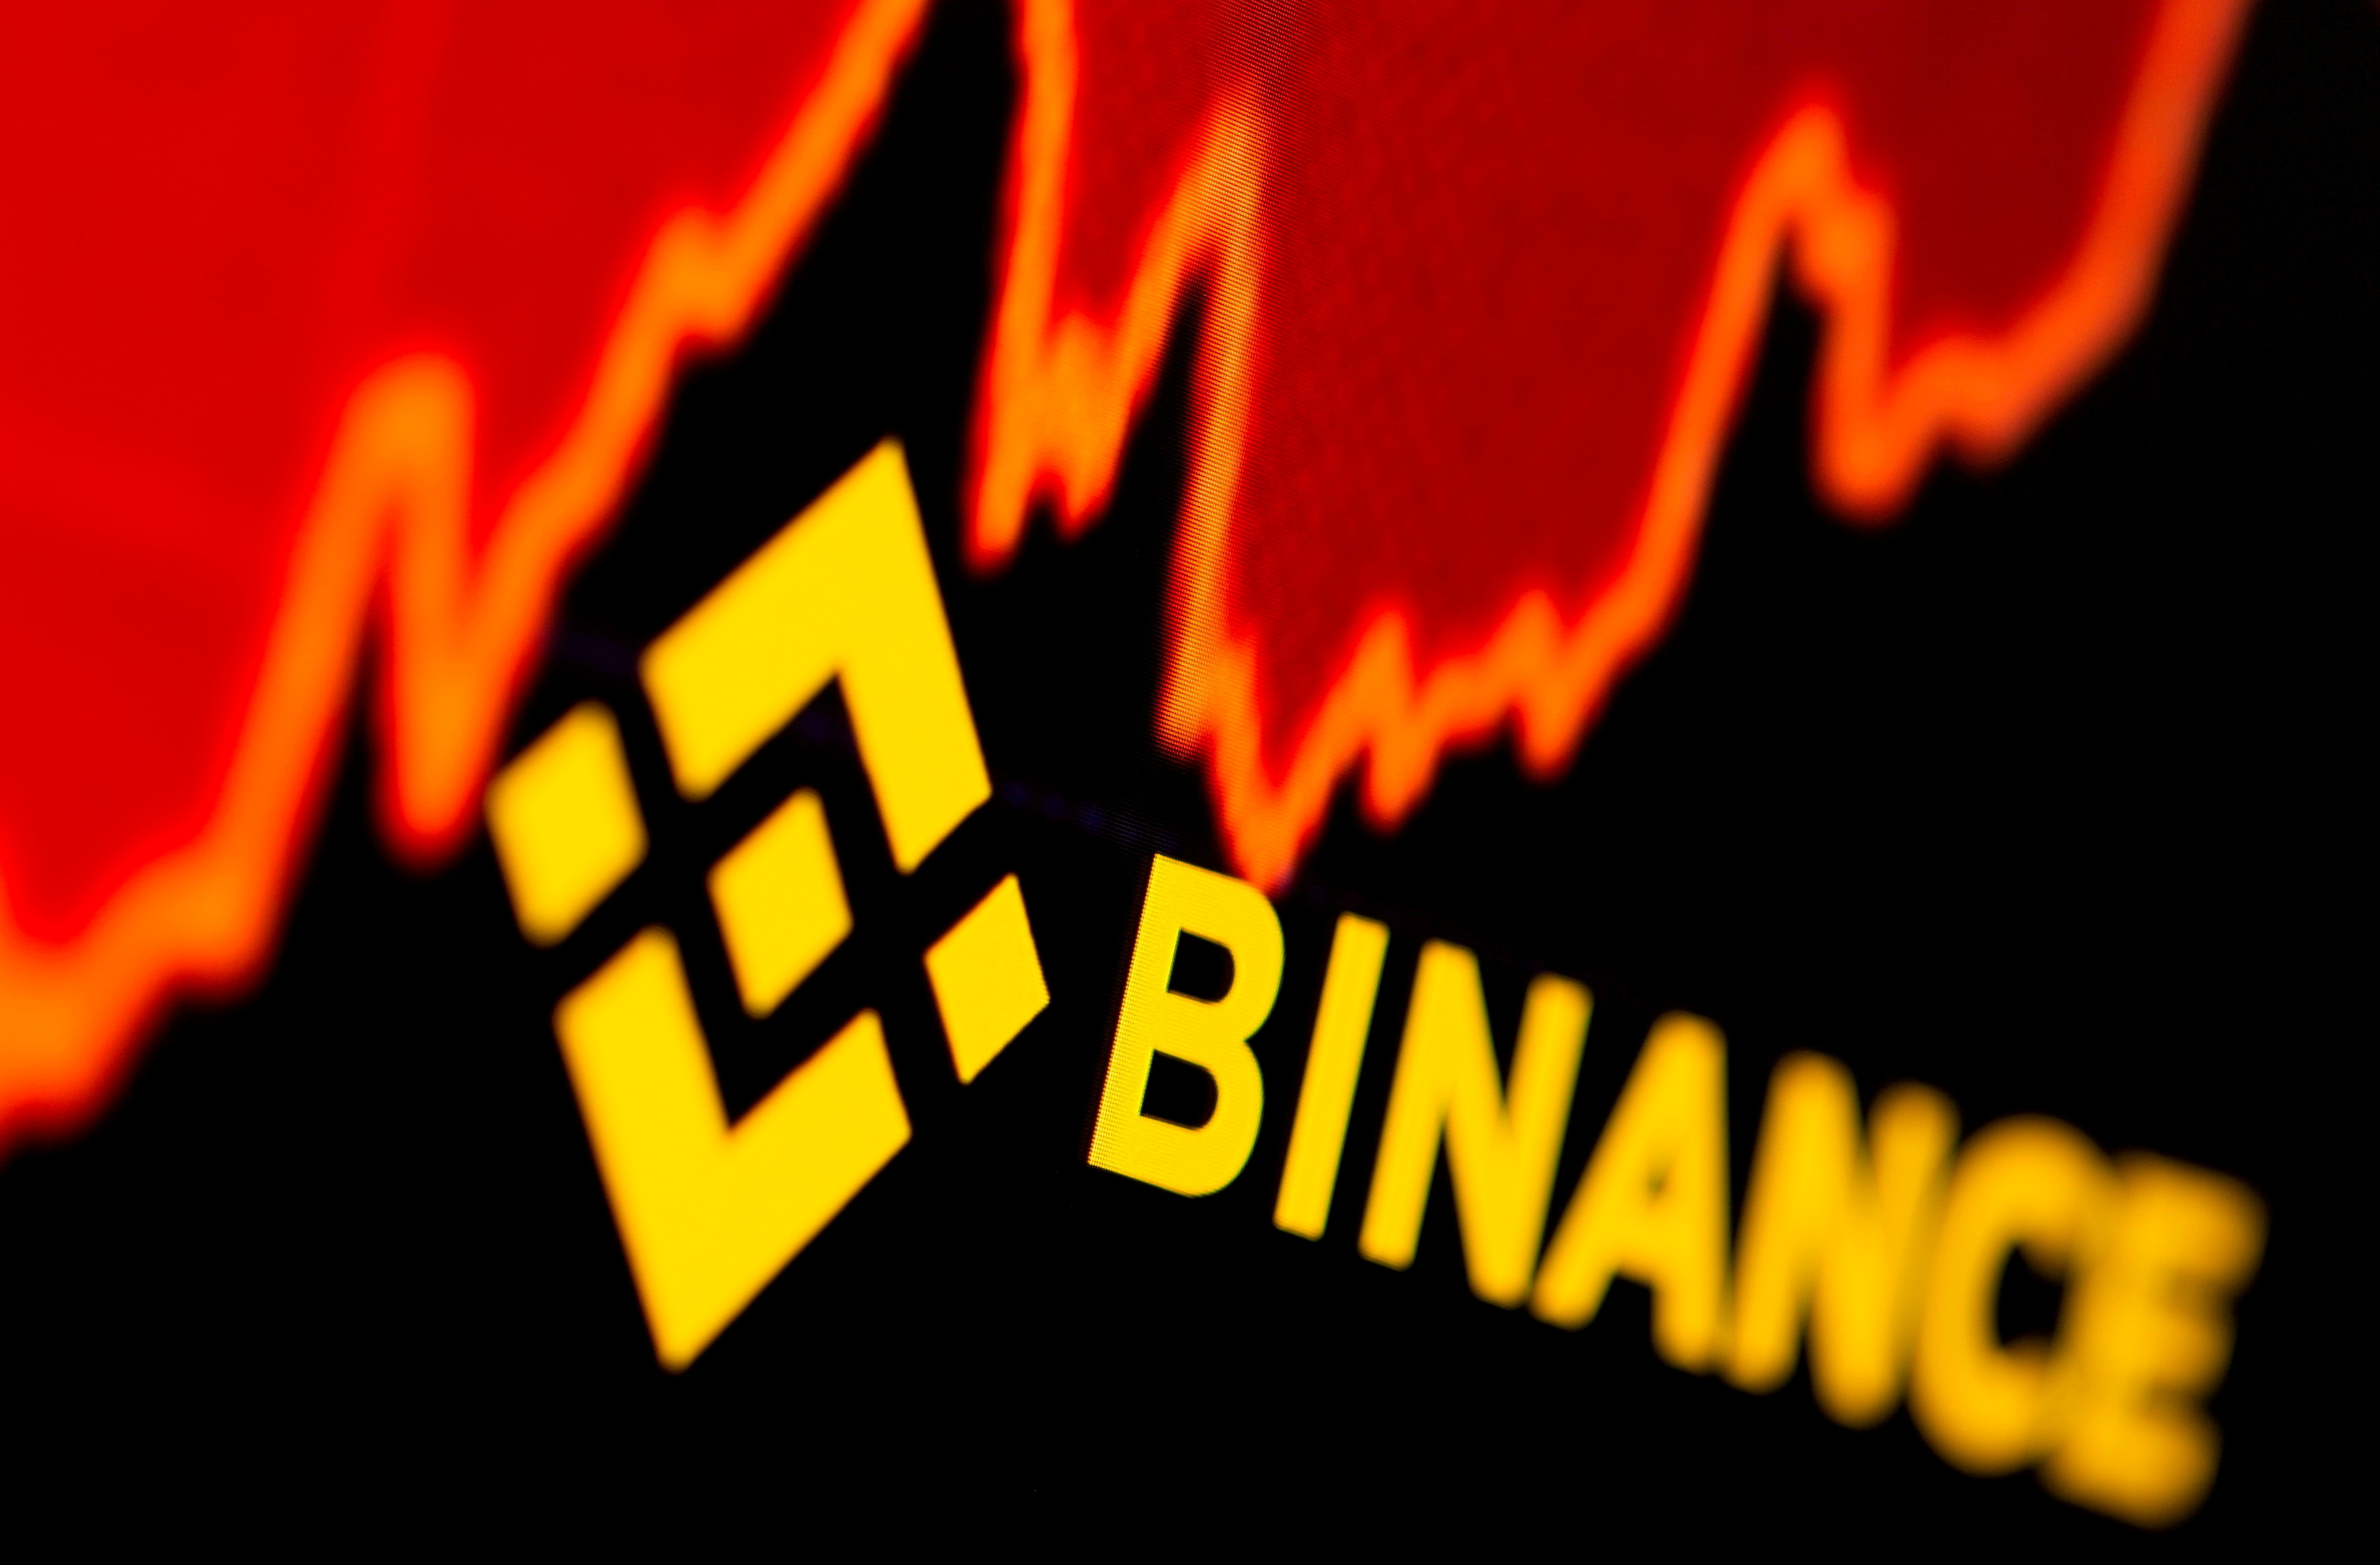 Binance to halt Chinese yuan trading amid Beijing's crypto crackdown |  Reuters